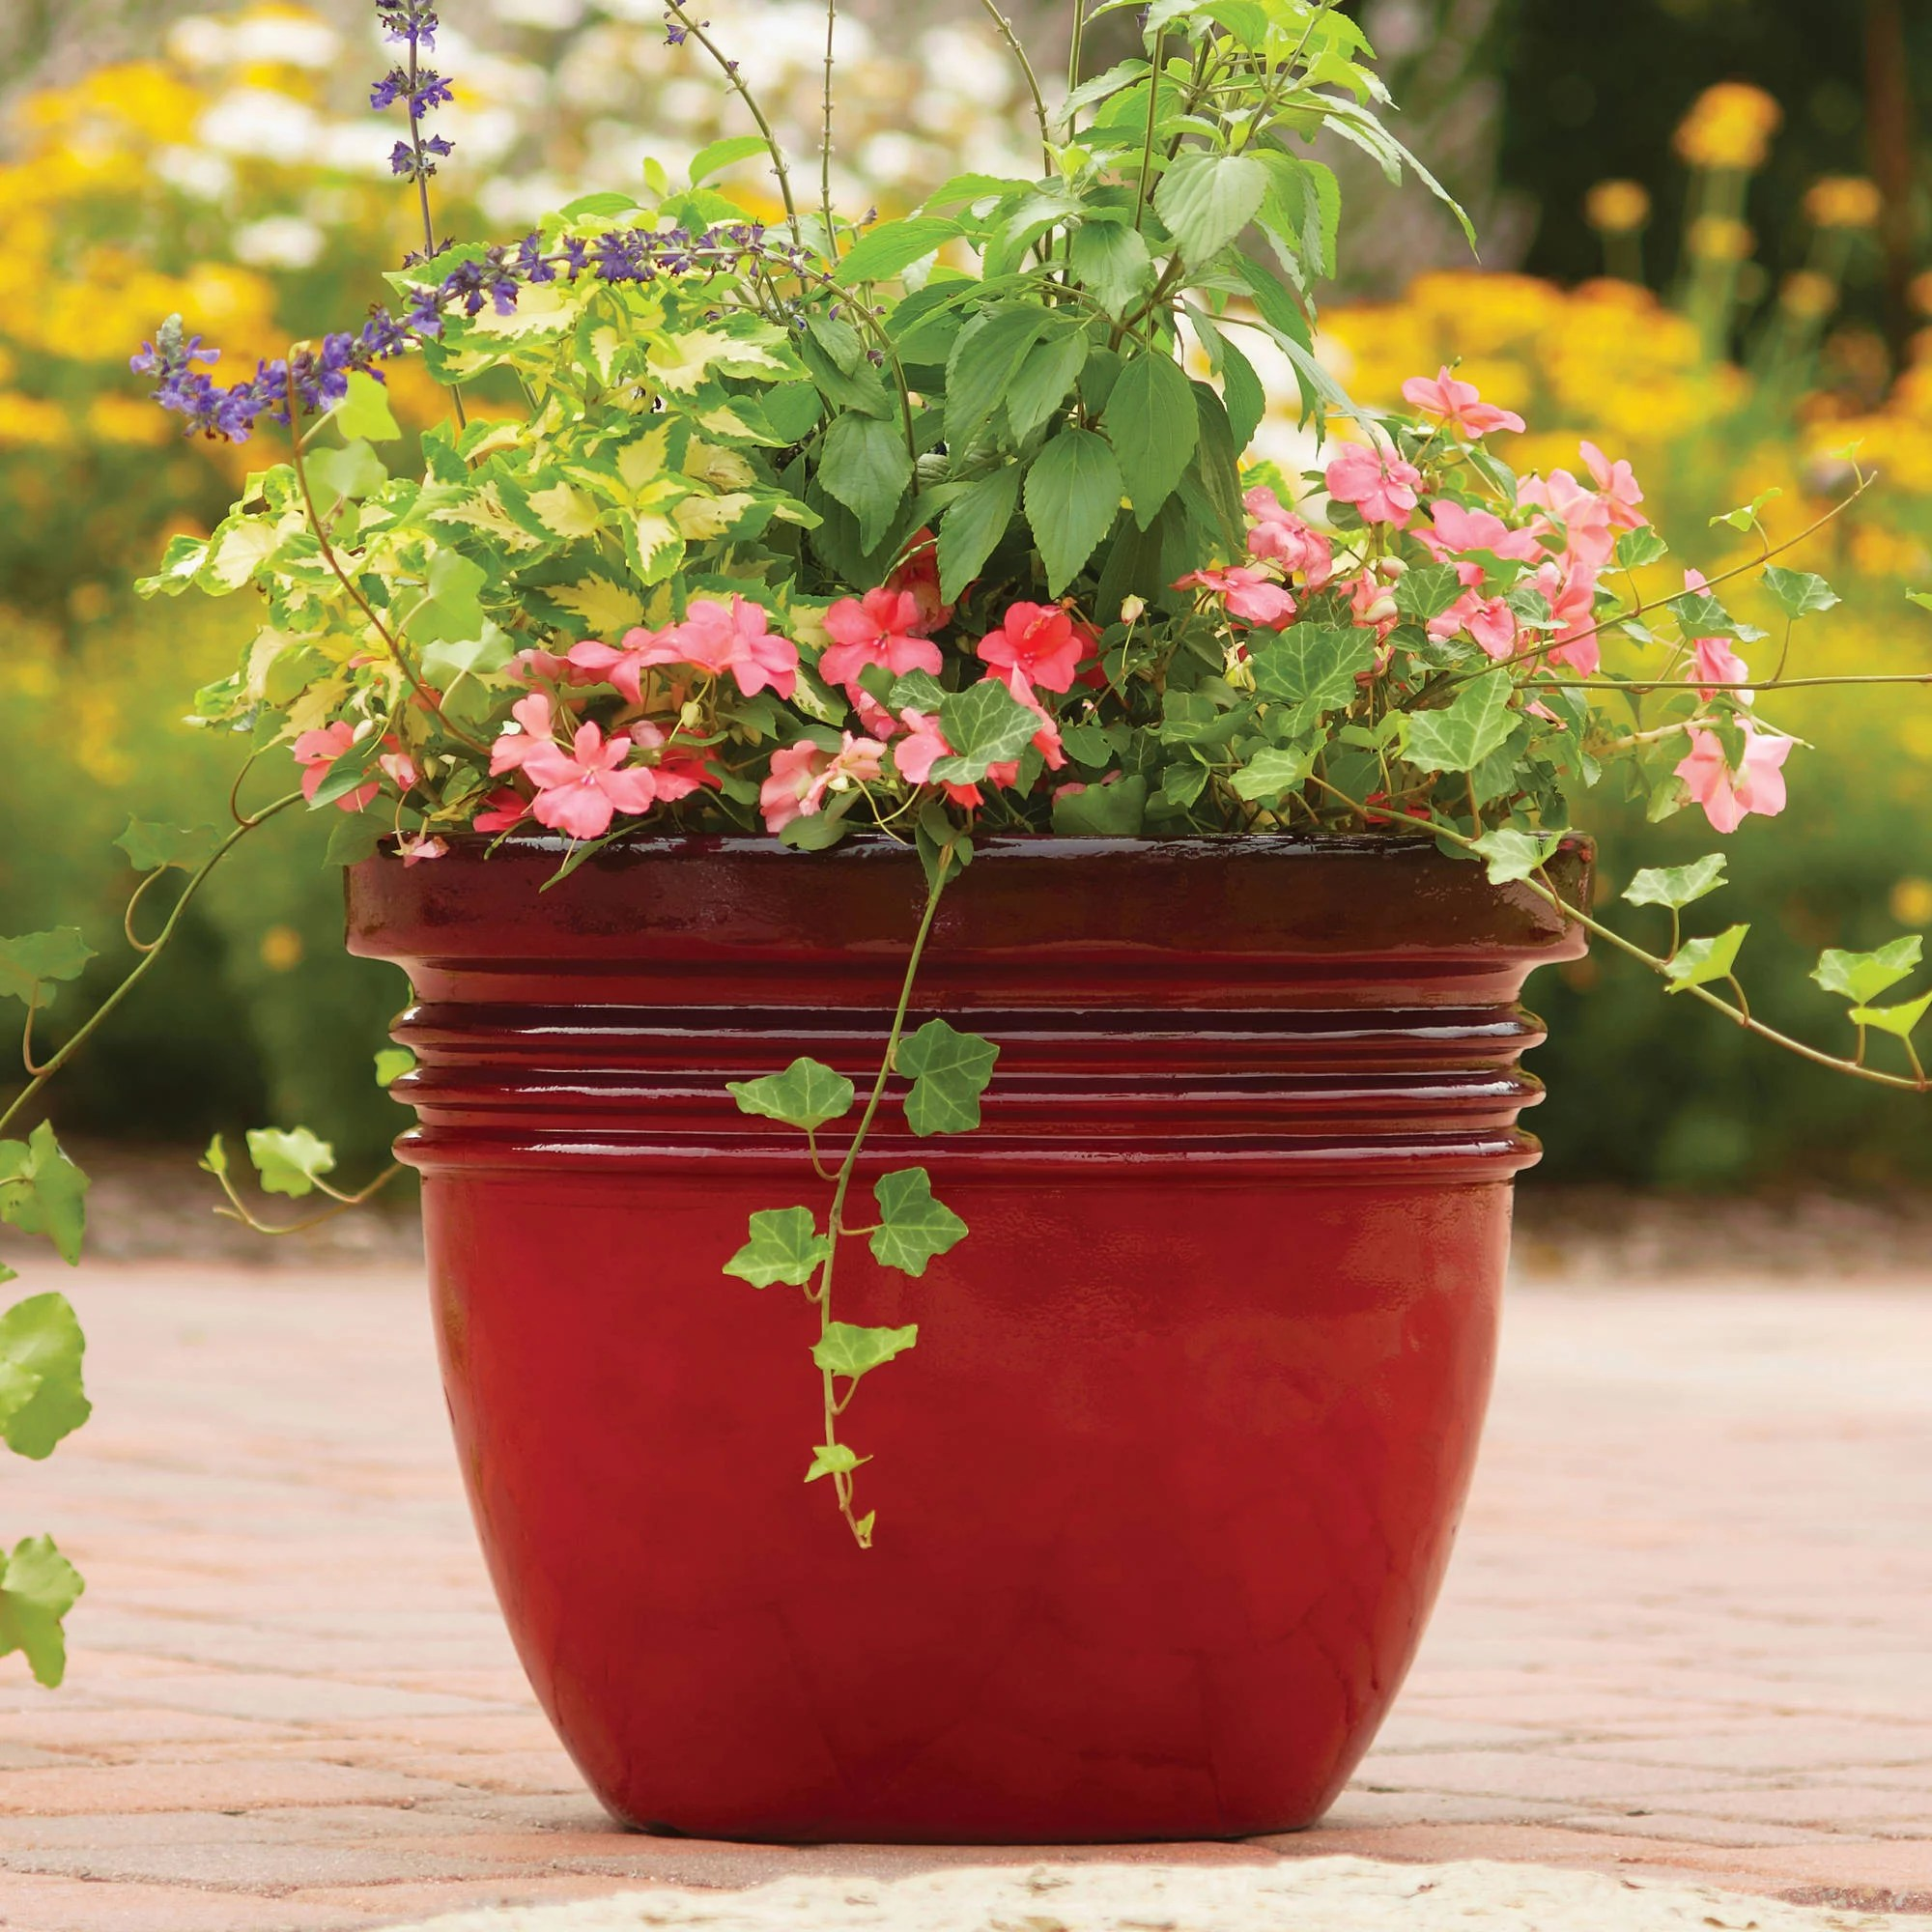 Better Homes and Gardens Bombay Decorative Outdoor Planter